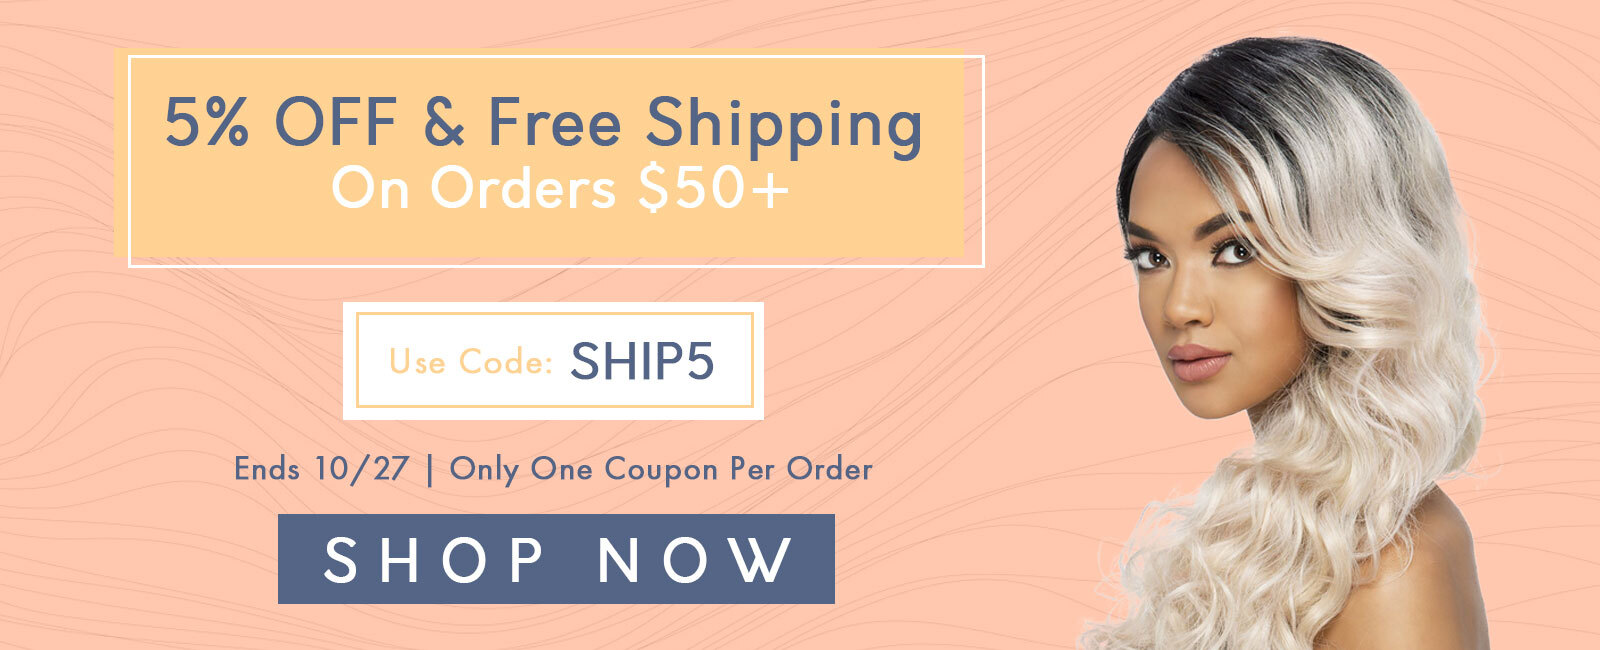 5-percent-off-and-free-shipping-orders-50-Homepage-Banner-Mobile